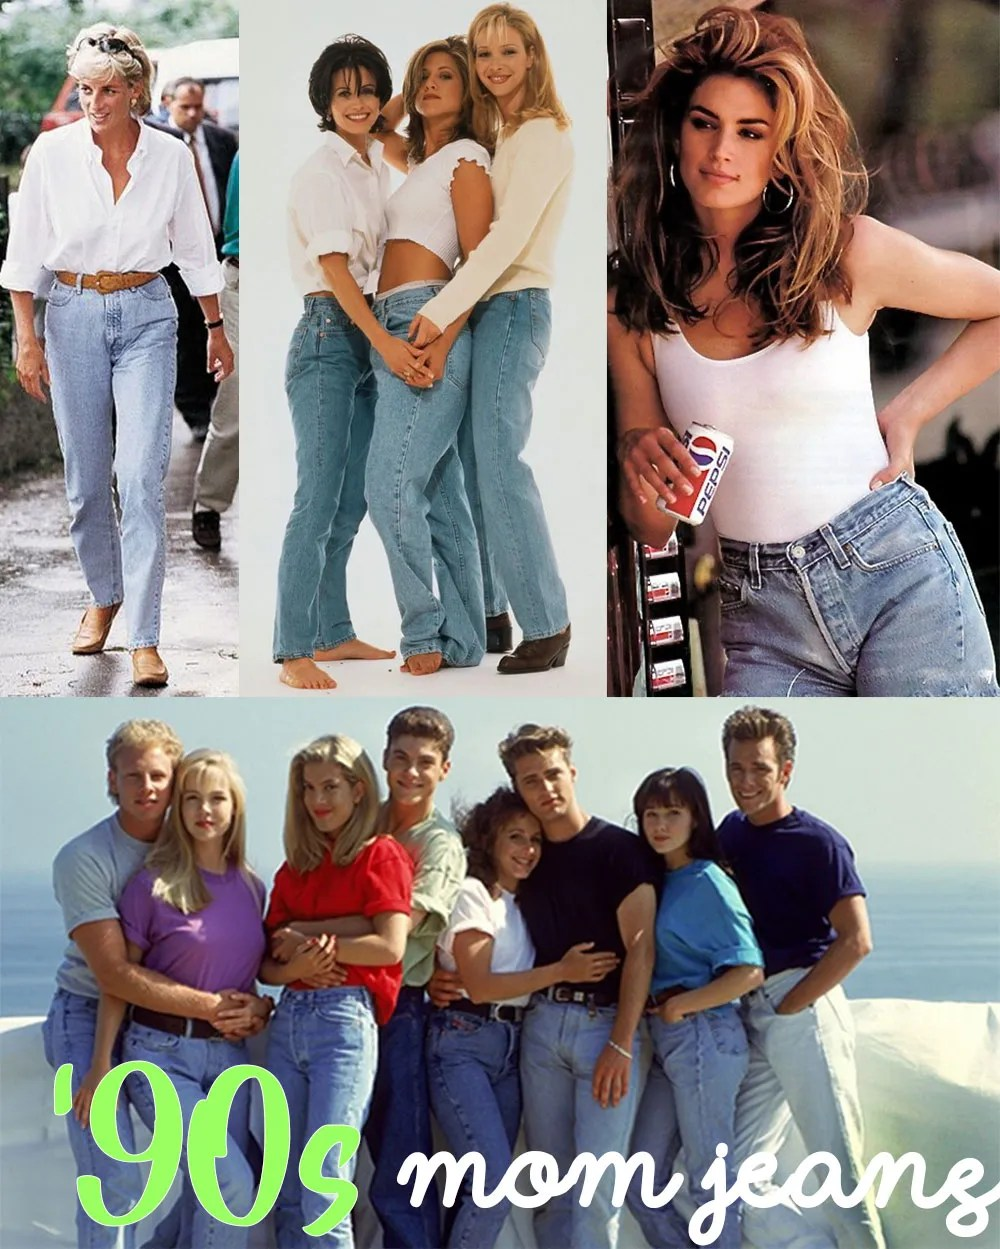 90s mom jeans